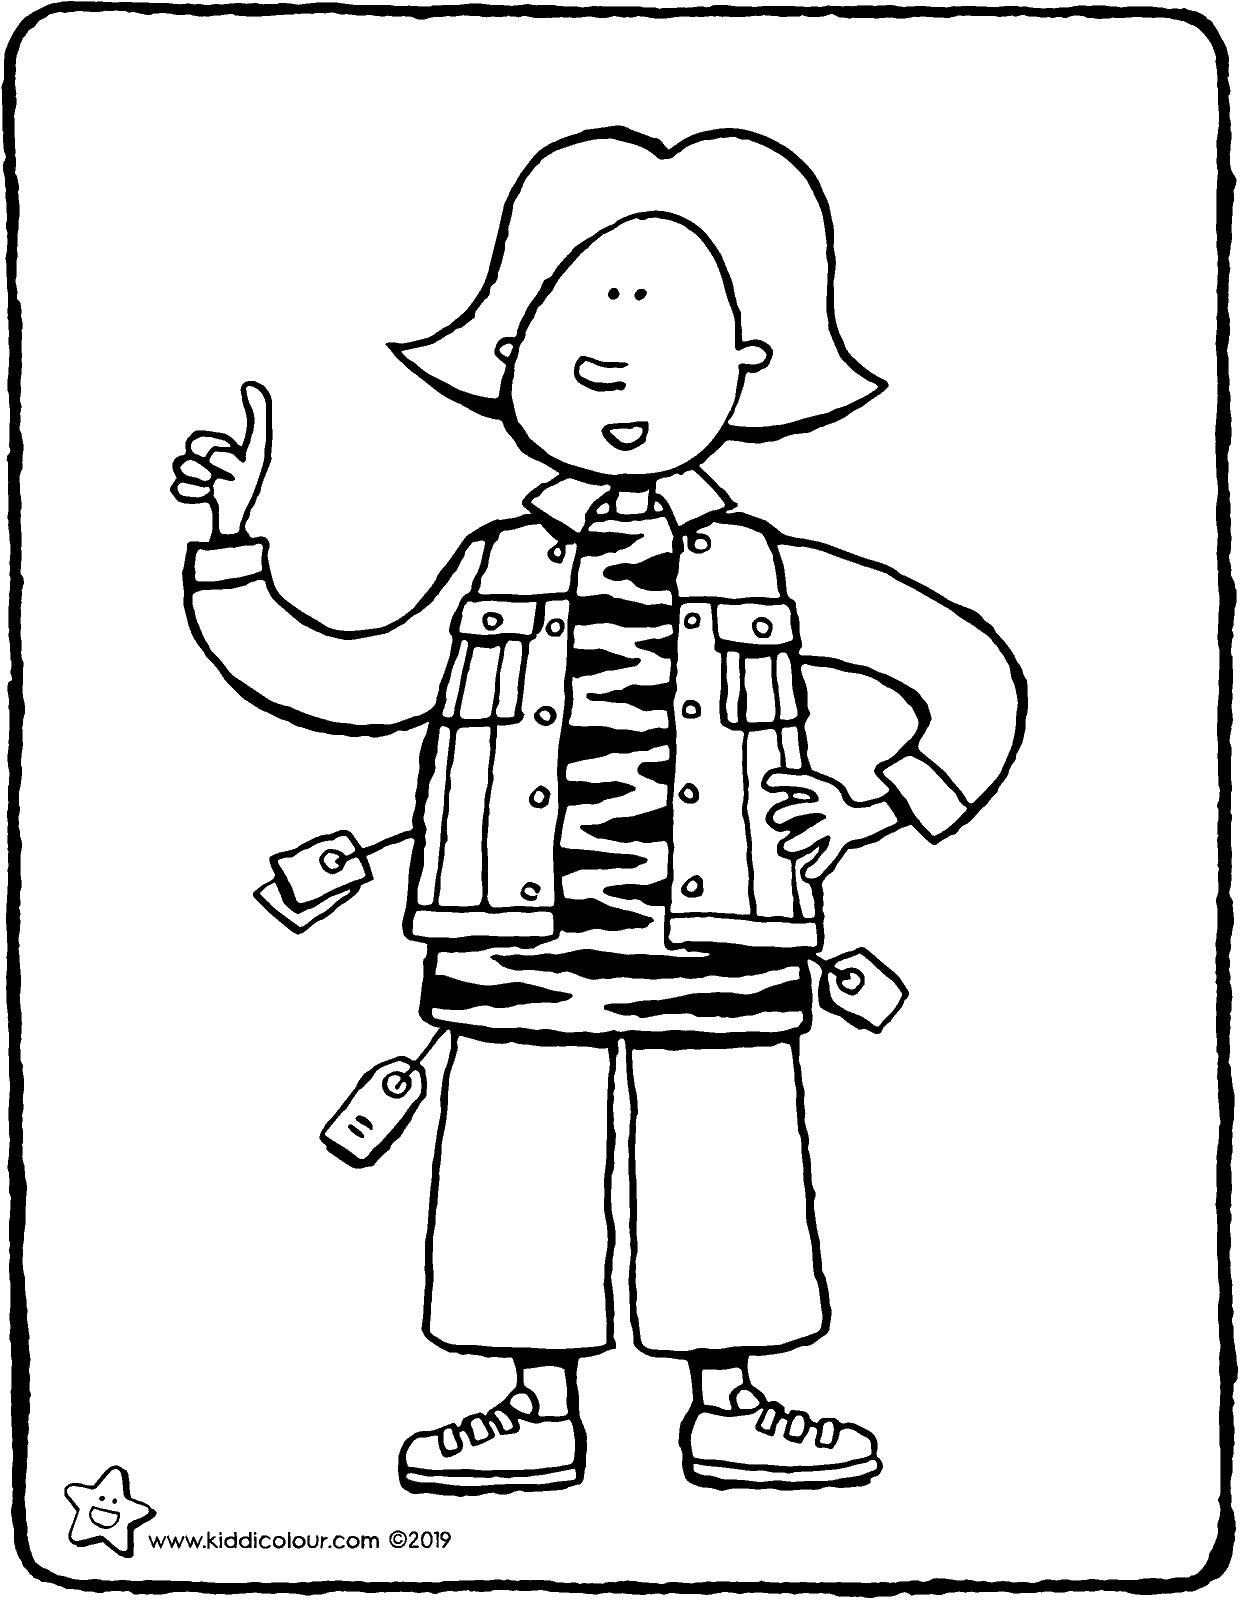 new clothes for Emma colouring page drawing picture 01V